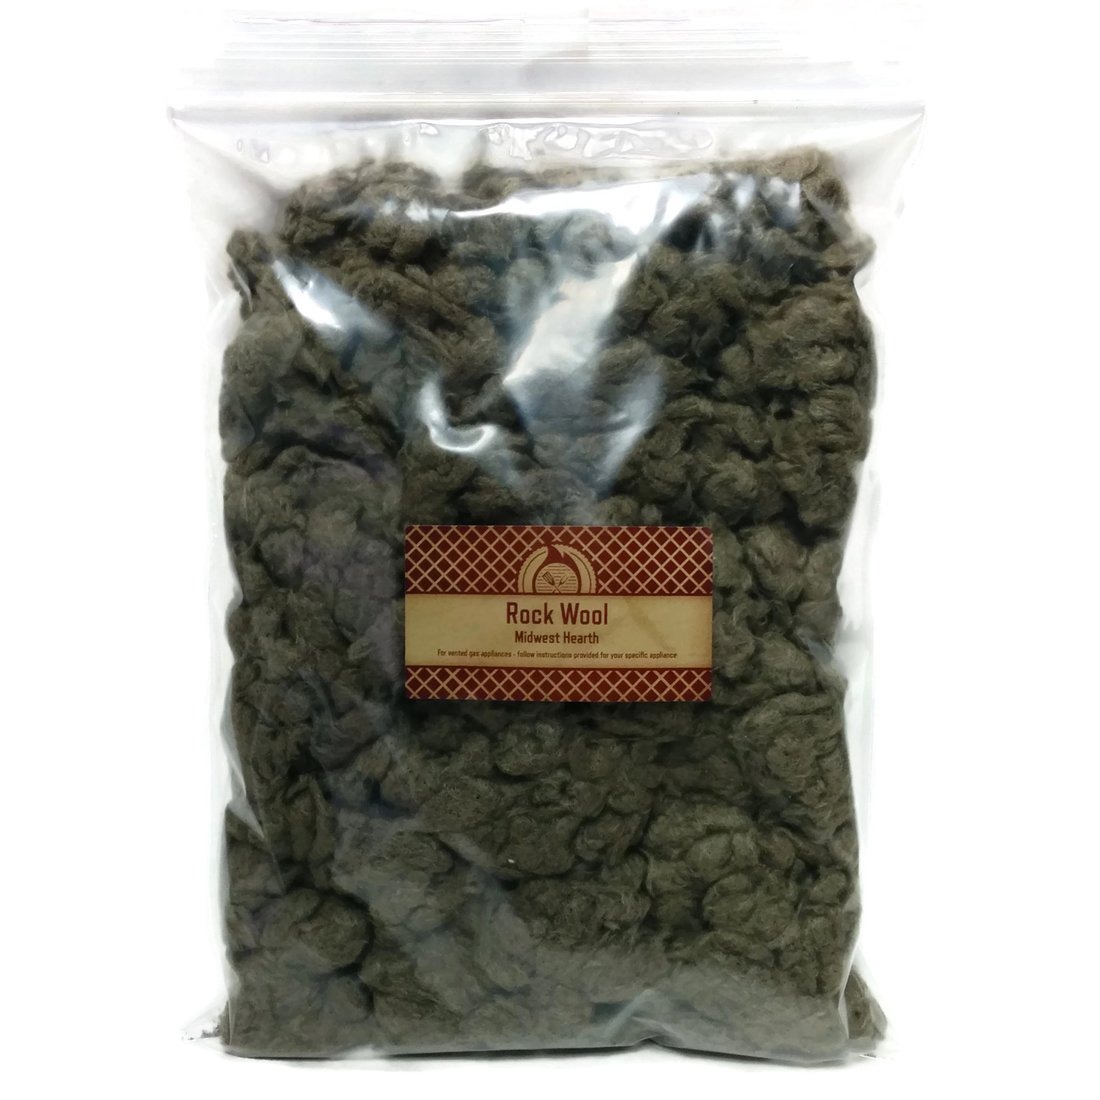 Midwest Hearth Rock Wool for Gas Log - 6 oz. Bag by Midwest Hearth